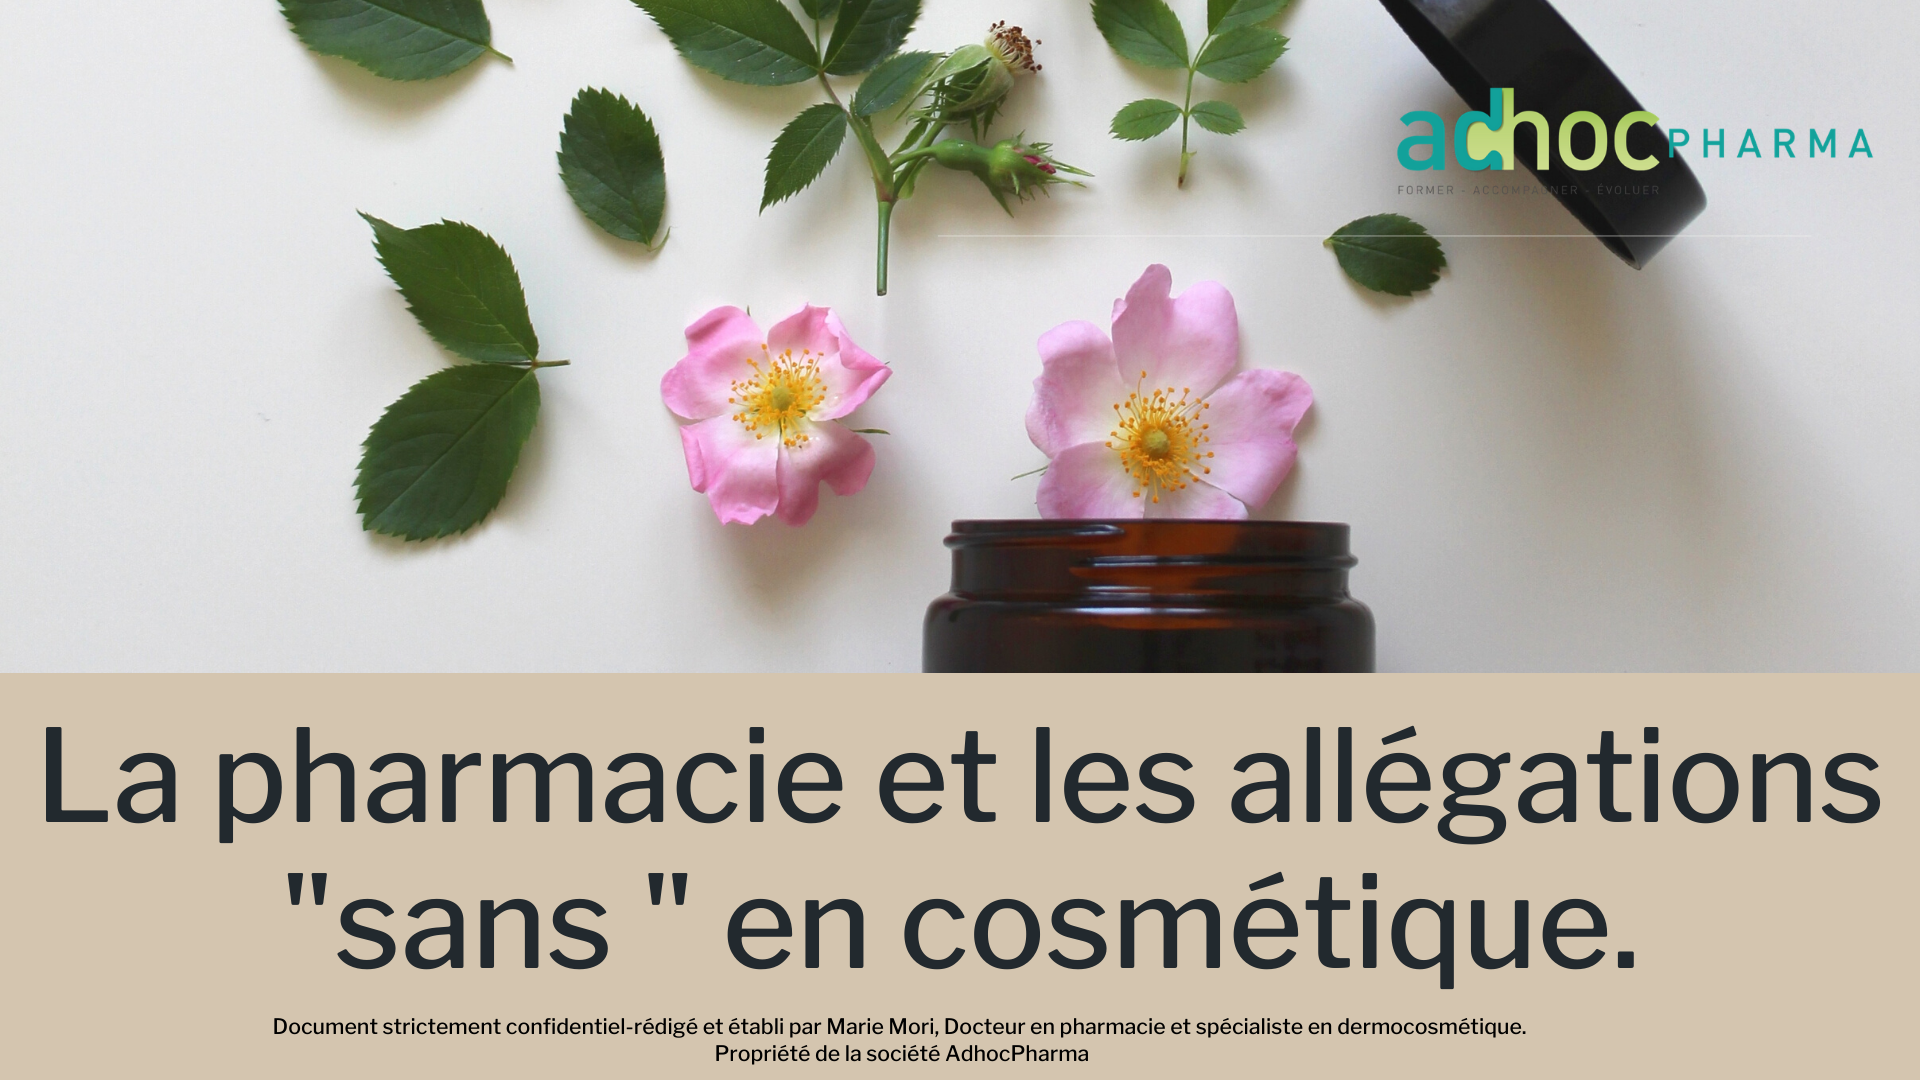 LES ALLEGATIONS SANS EN COSMETIQUE